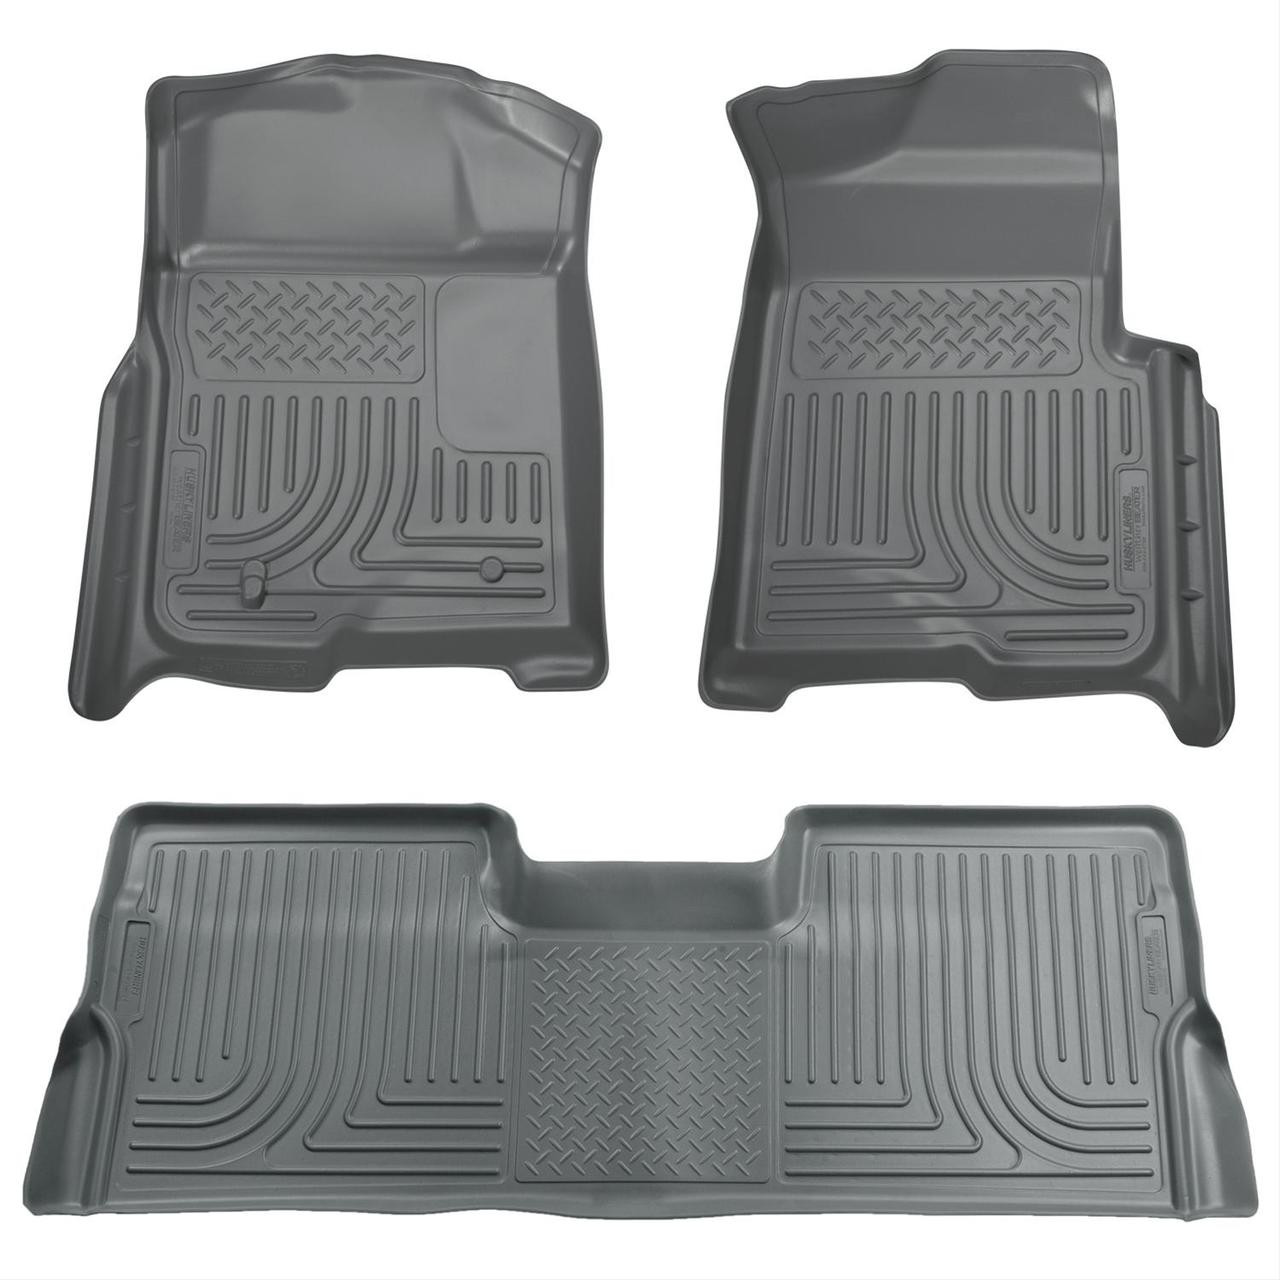 08-10 FORD SD CREW CAB W/O MANUAL 4X4 TRANSFER CASE WEATHERBEATER FRONT & 2ND SEAT FLR LNR 3PC GREY